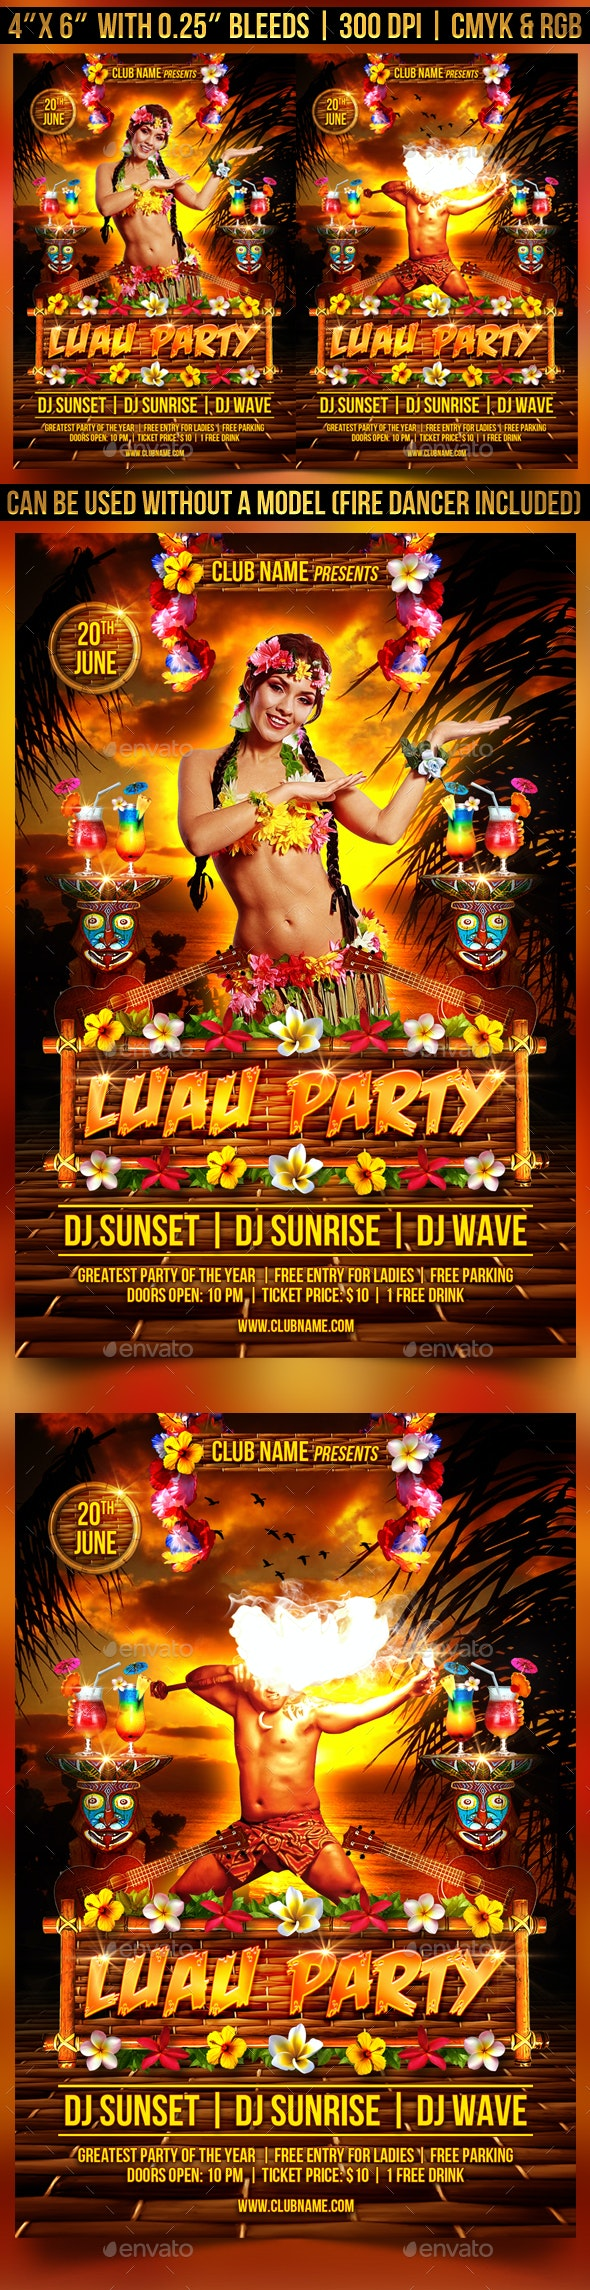 Luau Party Flyer Template - Clubs & Parties Events